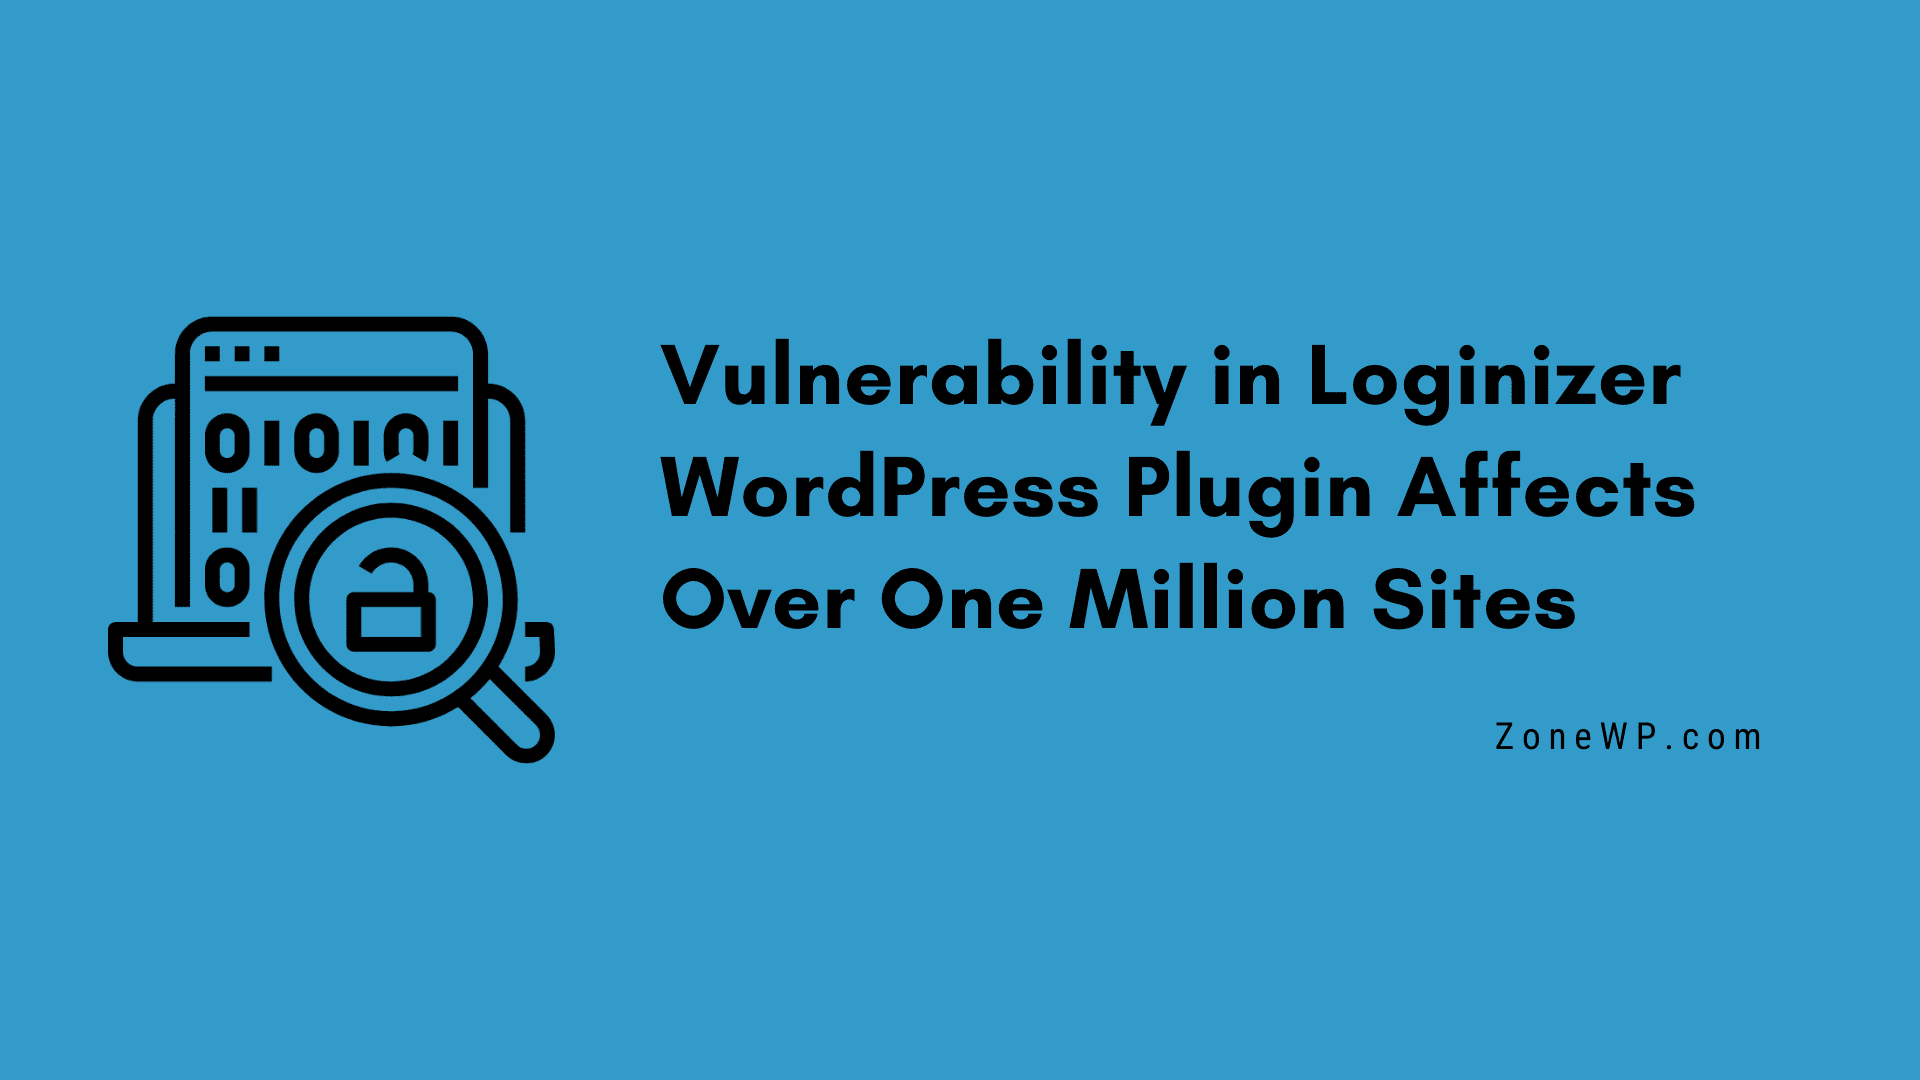 Vulnerability in Loginizer WordPress Plugin Affects Over One Million Sites